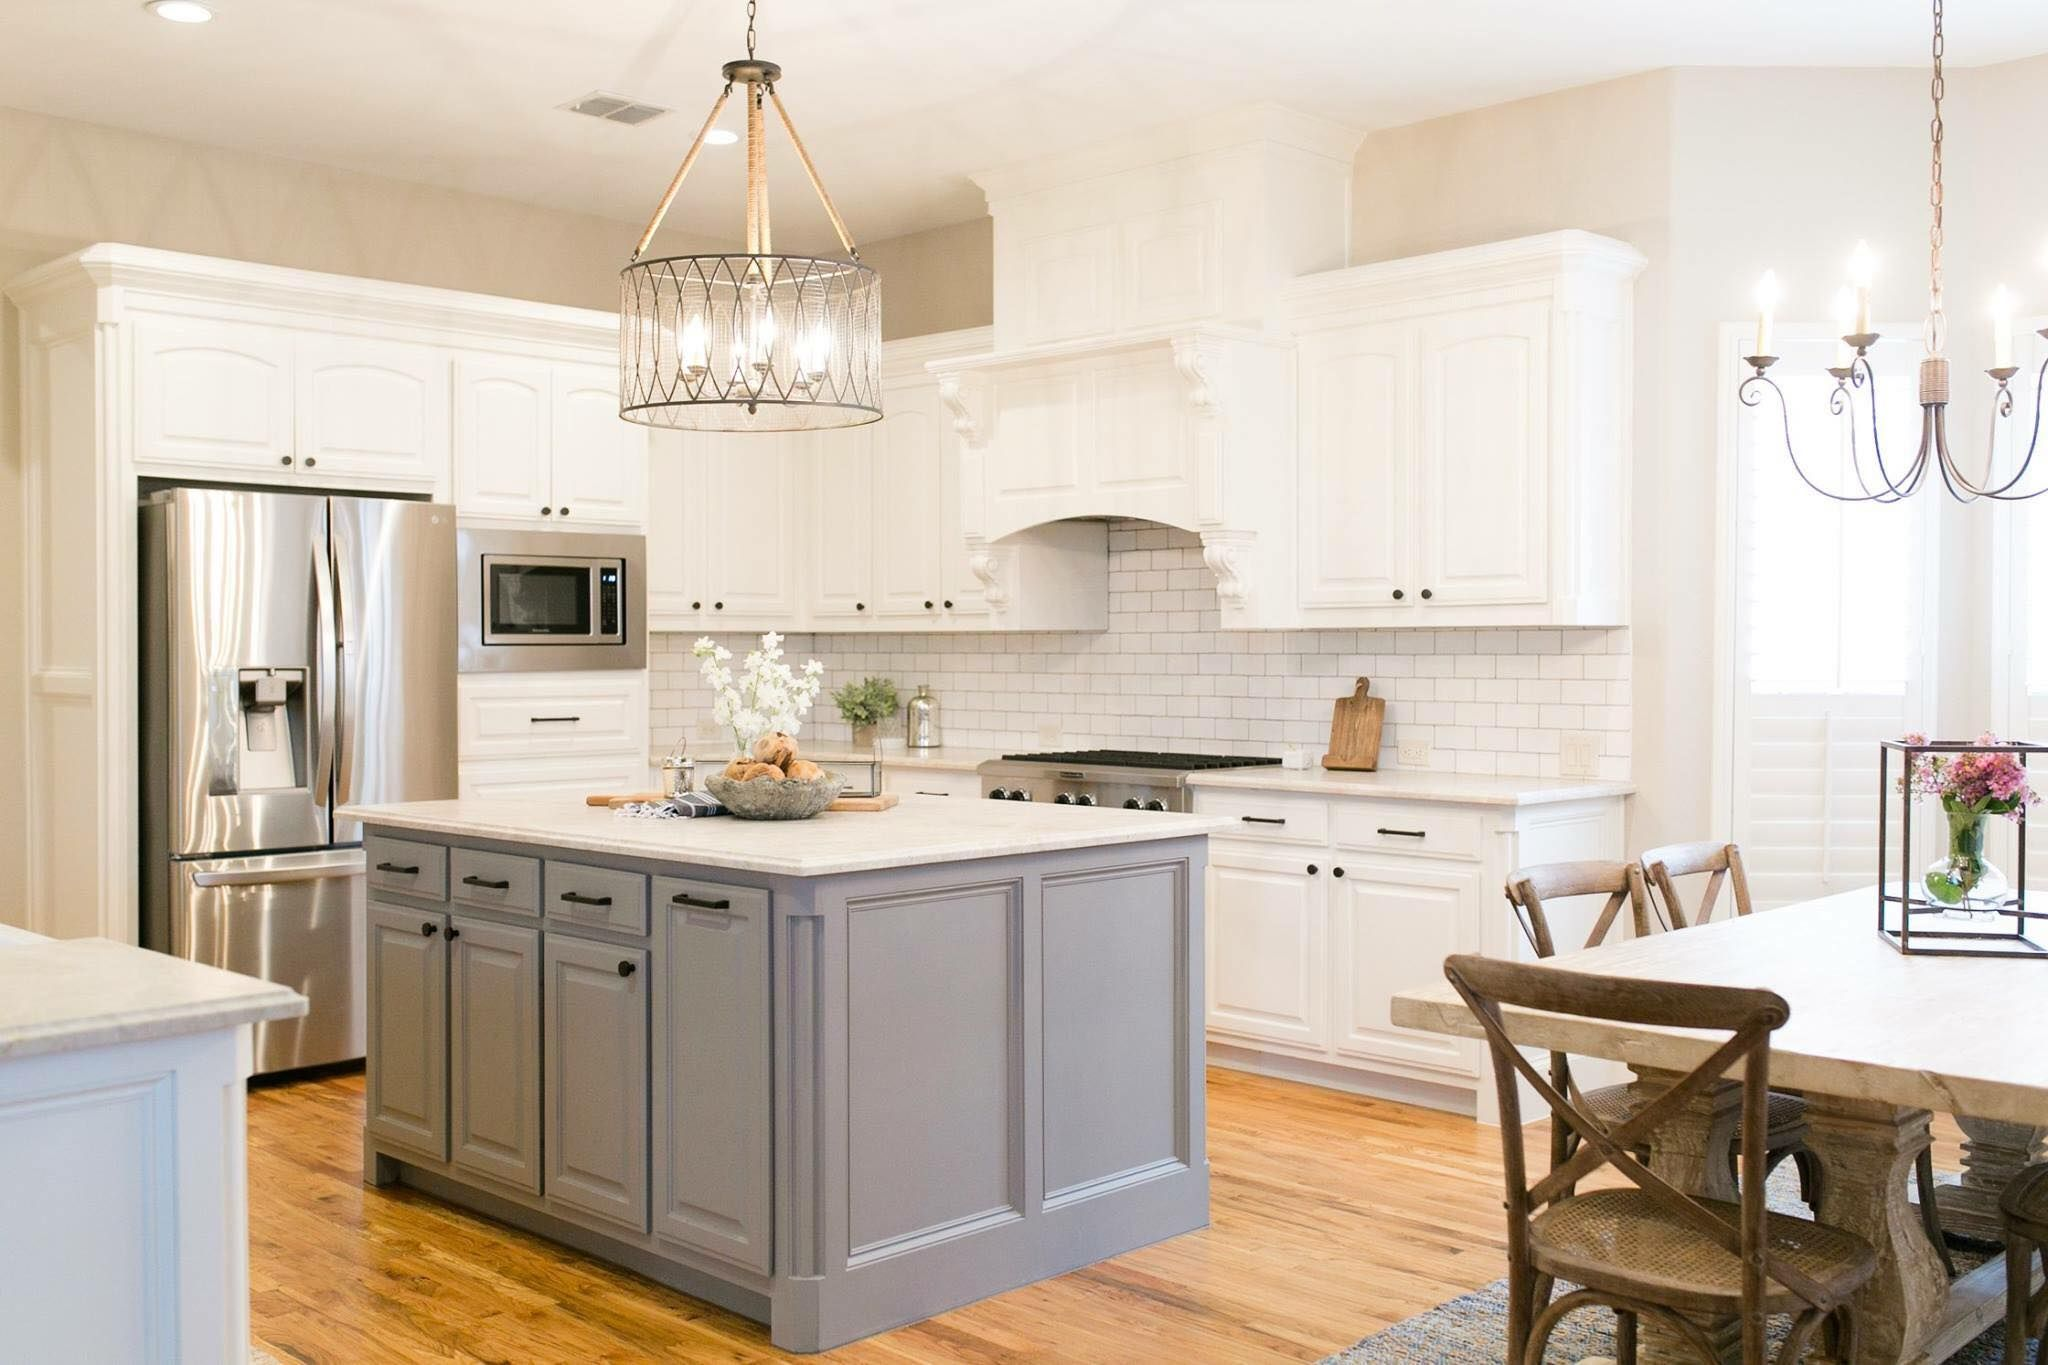 Timeless Kitchen Timeless Kitchen Natural Wood Flooring Grey Cabinets